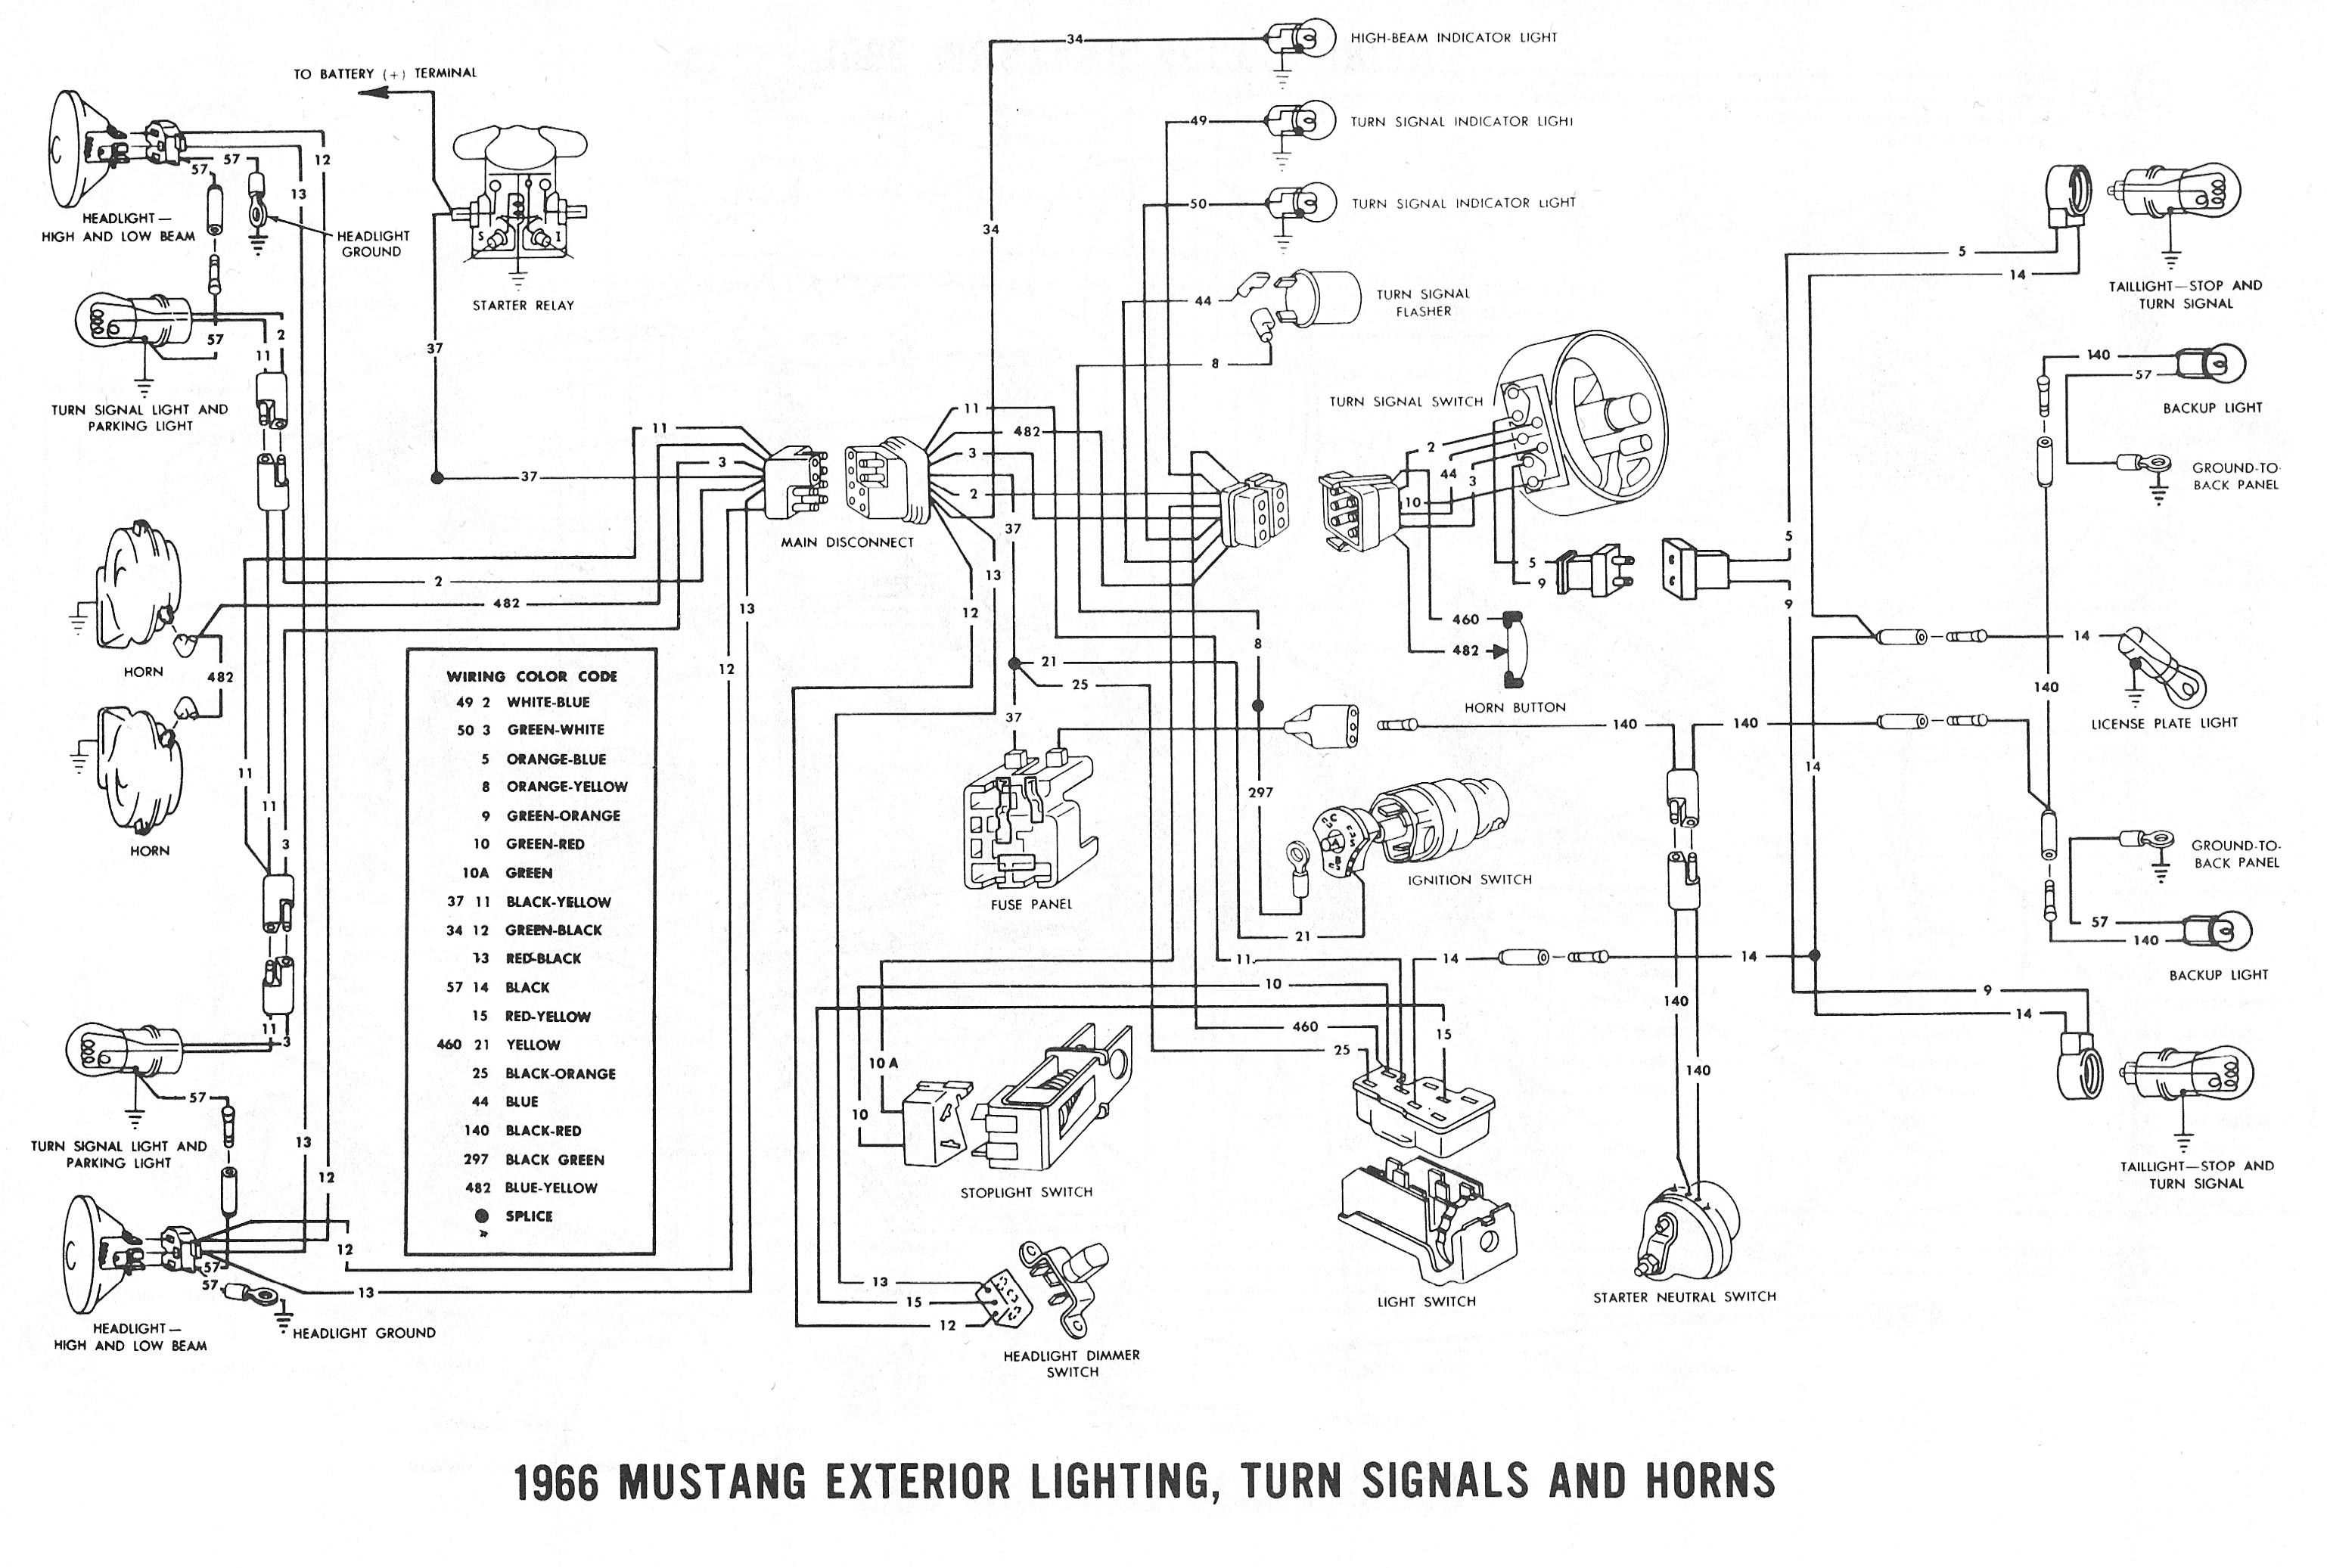 71 Cougar Wiring Diagram - Wiring Diagram Str on 71 cuda rear suspension, 68 charger wiring diagram, 61 impala wiring diagram, 71 cuda wiper motor, 70 cuda wiring diagram, 1967 pontiac gto wiring diagram, 70 charger wiring diagram, 67 camaro wiring diagram,